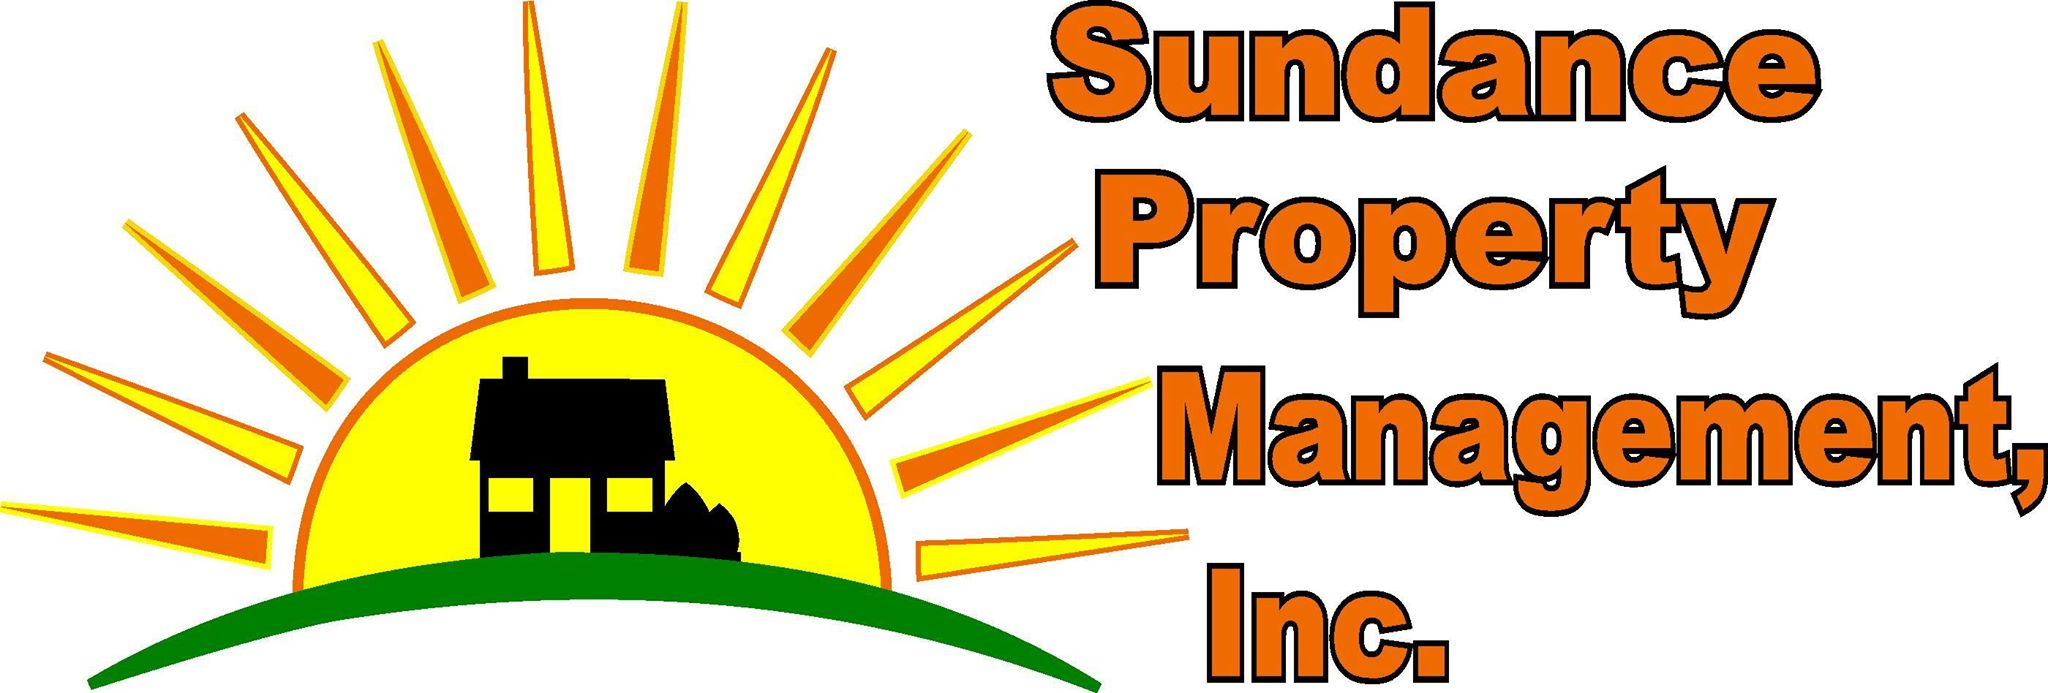 Sundance Property Management